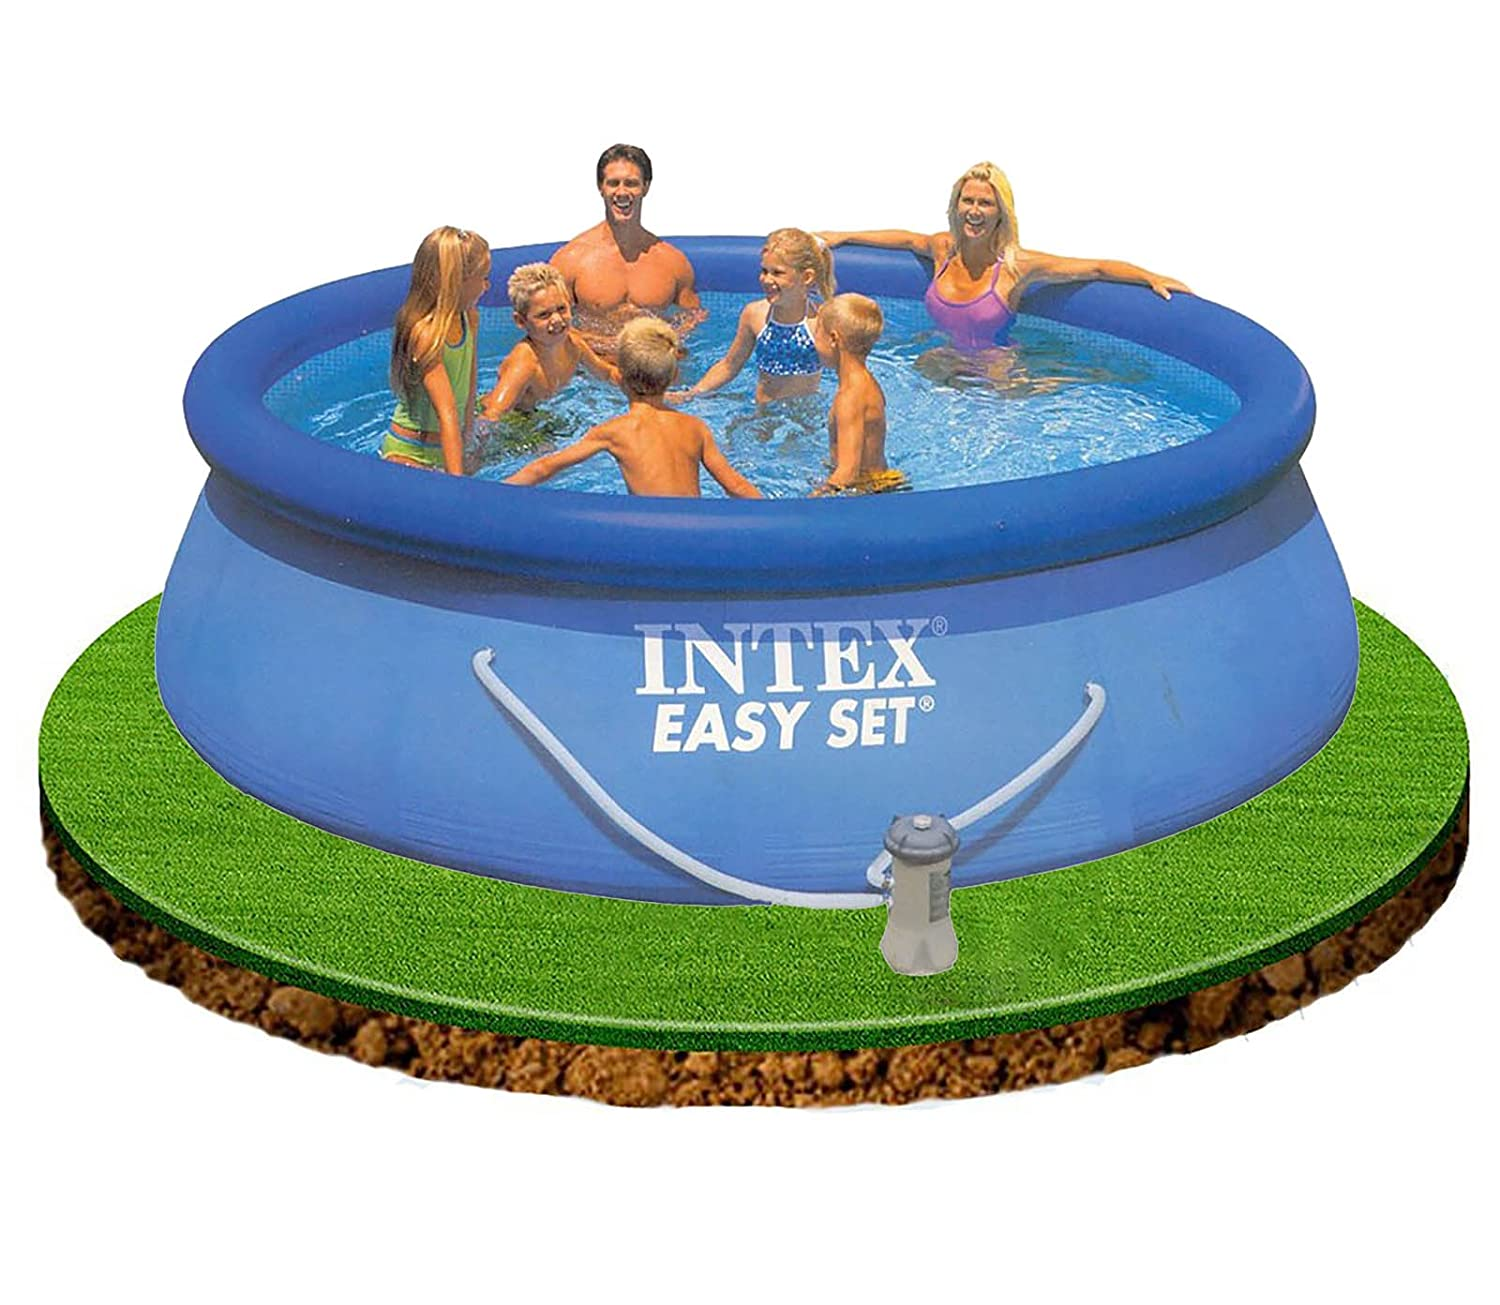 intex easy set up 12 foot x 36 inch pool price in pakistan intex in pakistan at symbios pk. Black Bedroom Furniture Sets. Home Design Ideas